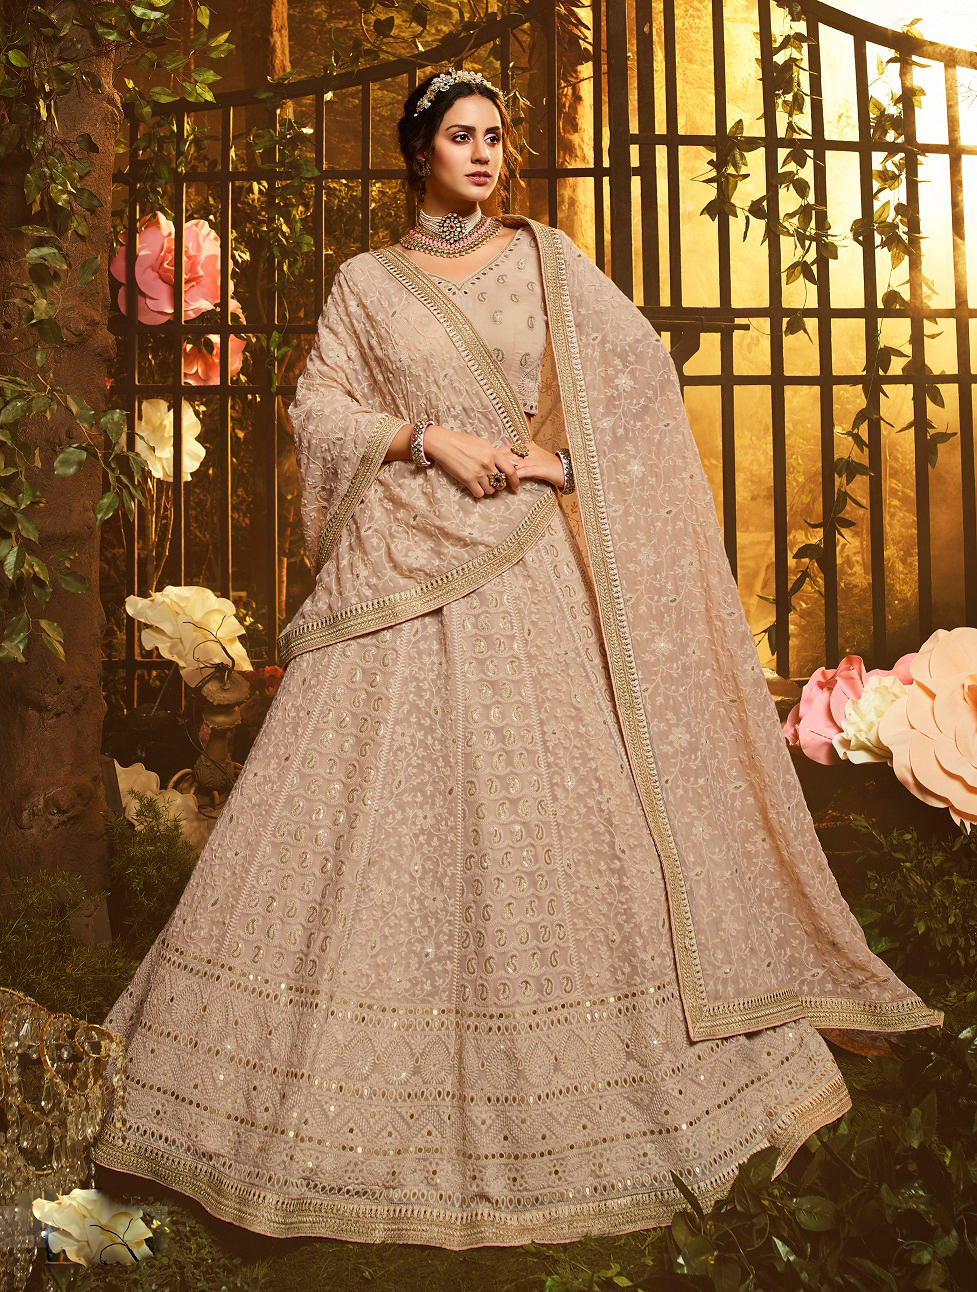 New trendy white color gown with white color soft net dupatta